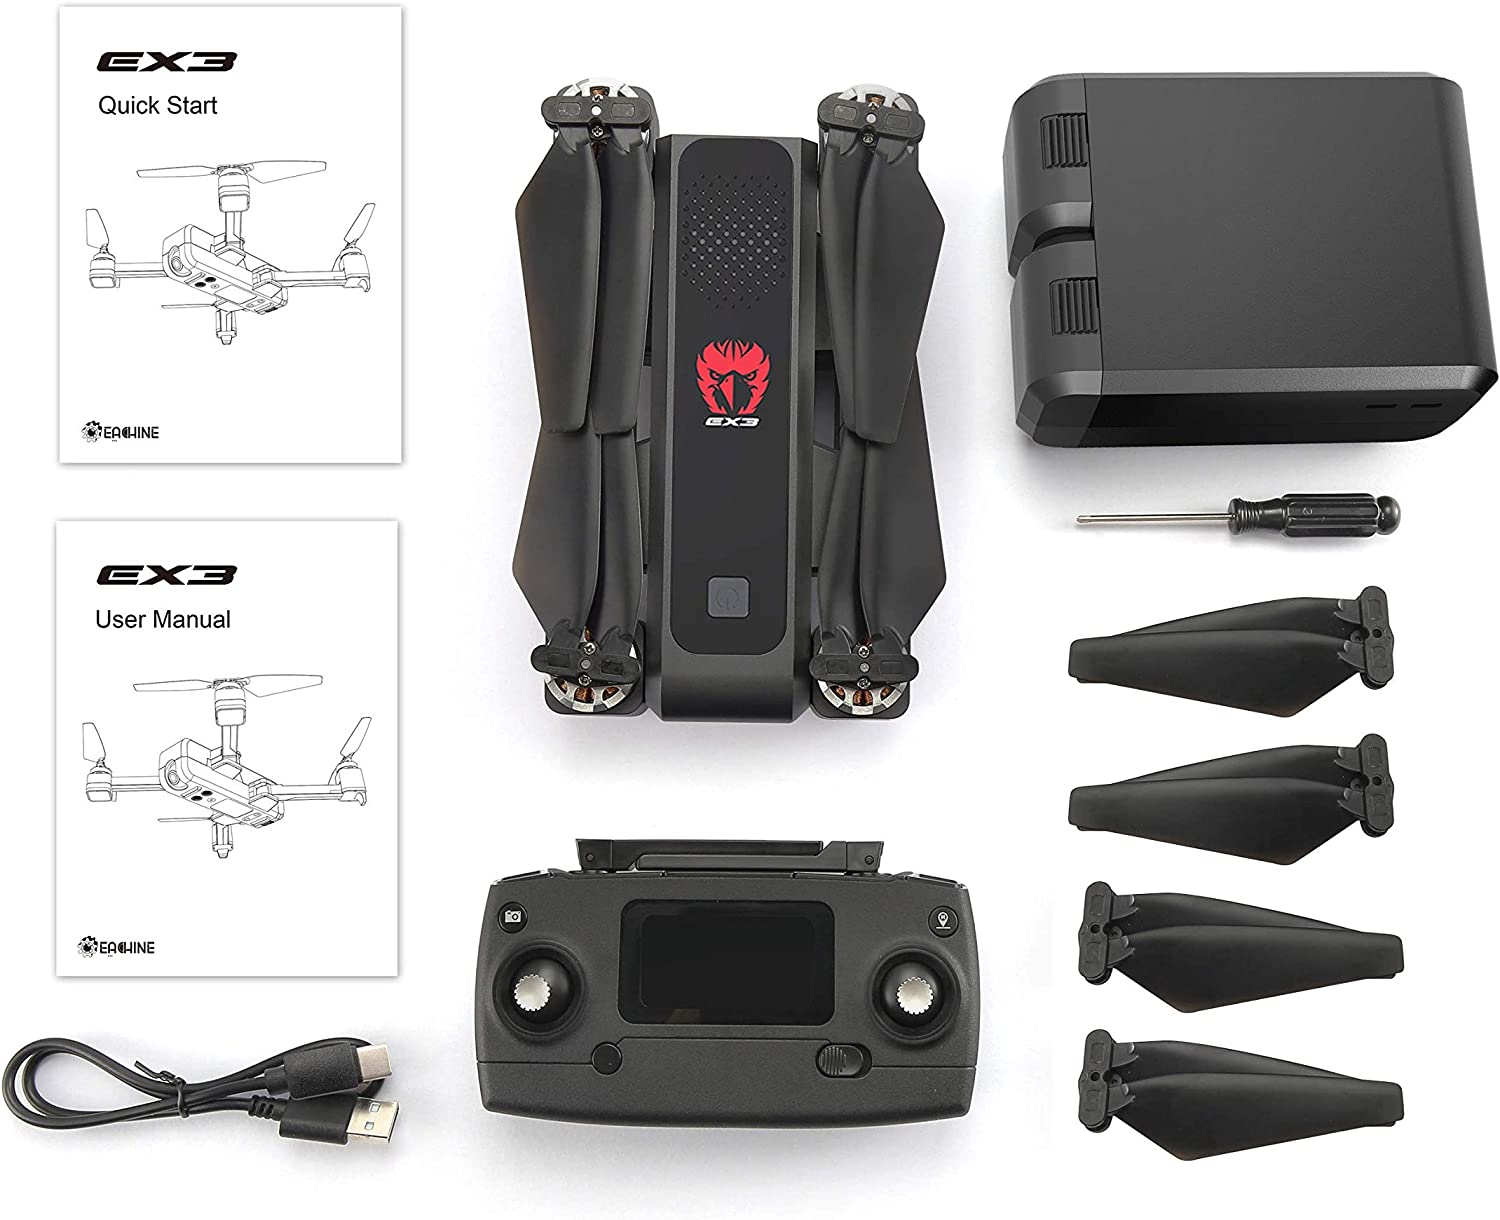 Eachine Ex3 foldable drone is at # 11 for best drones under 300 dollars